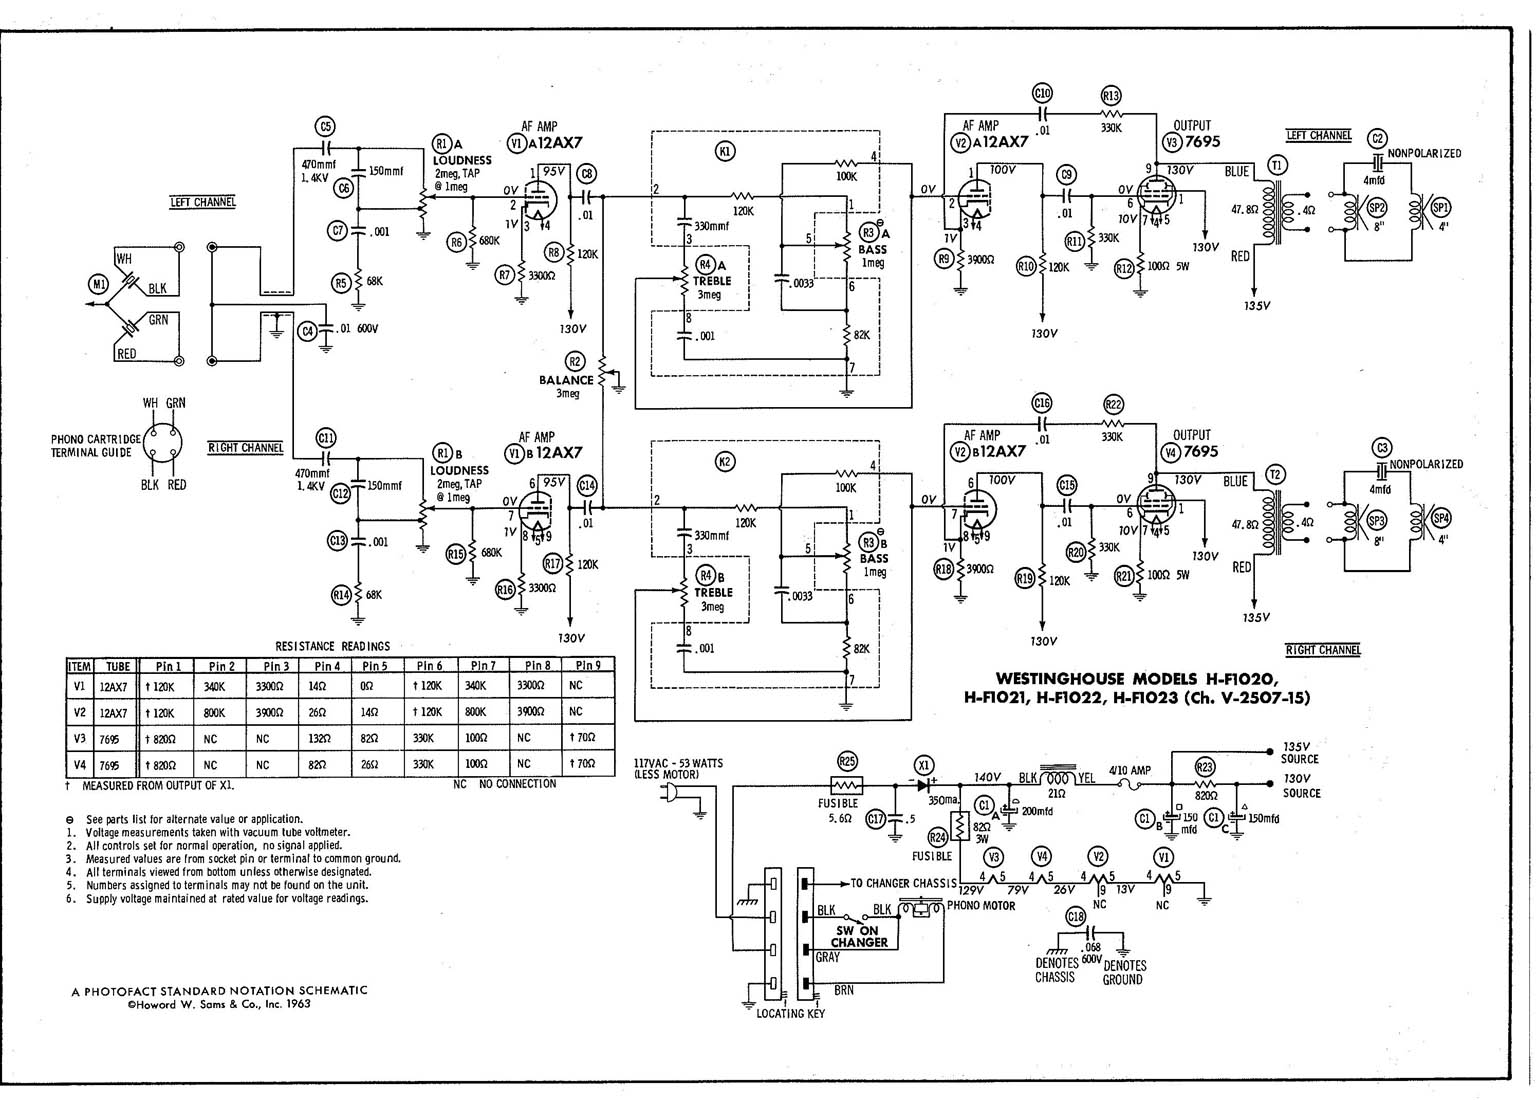 Sega Stereo Sound   Rca Jacks Arcade Machine Game Pcb Printed 1 additionally Index additionally Index furthermore Index as well 2013 07 01 archive. on rca jukebox schematics